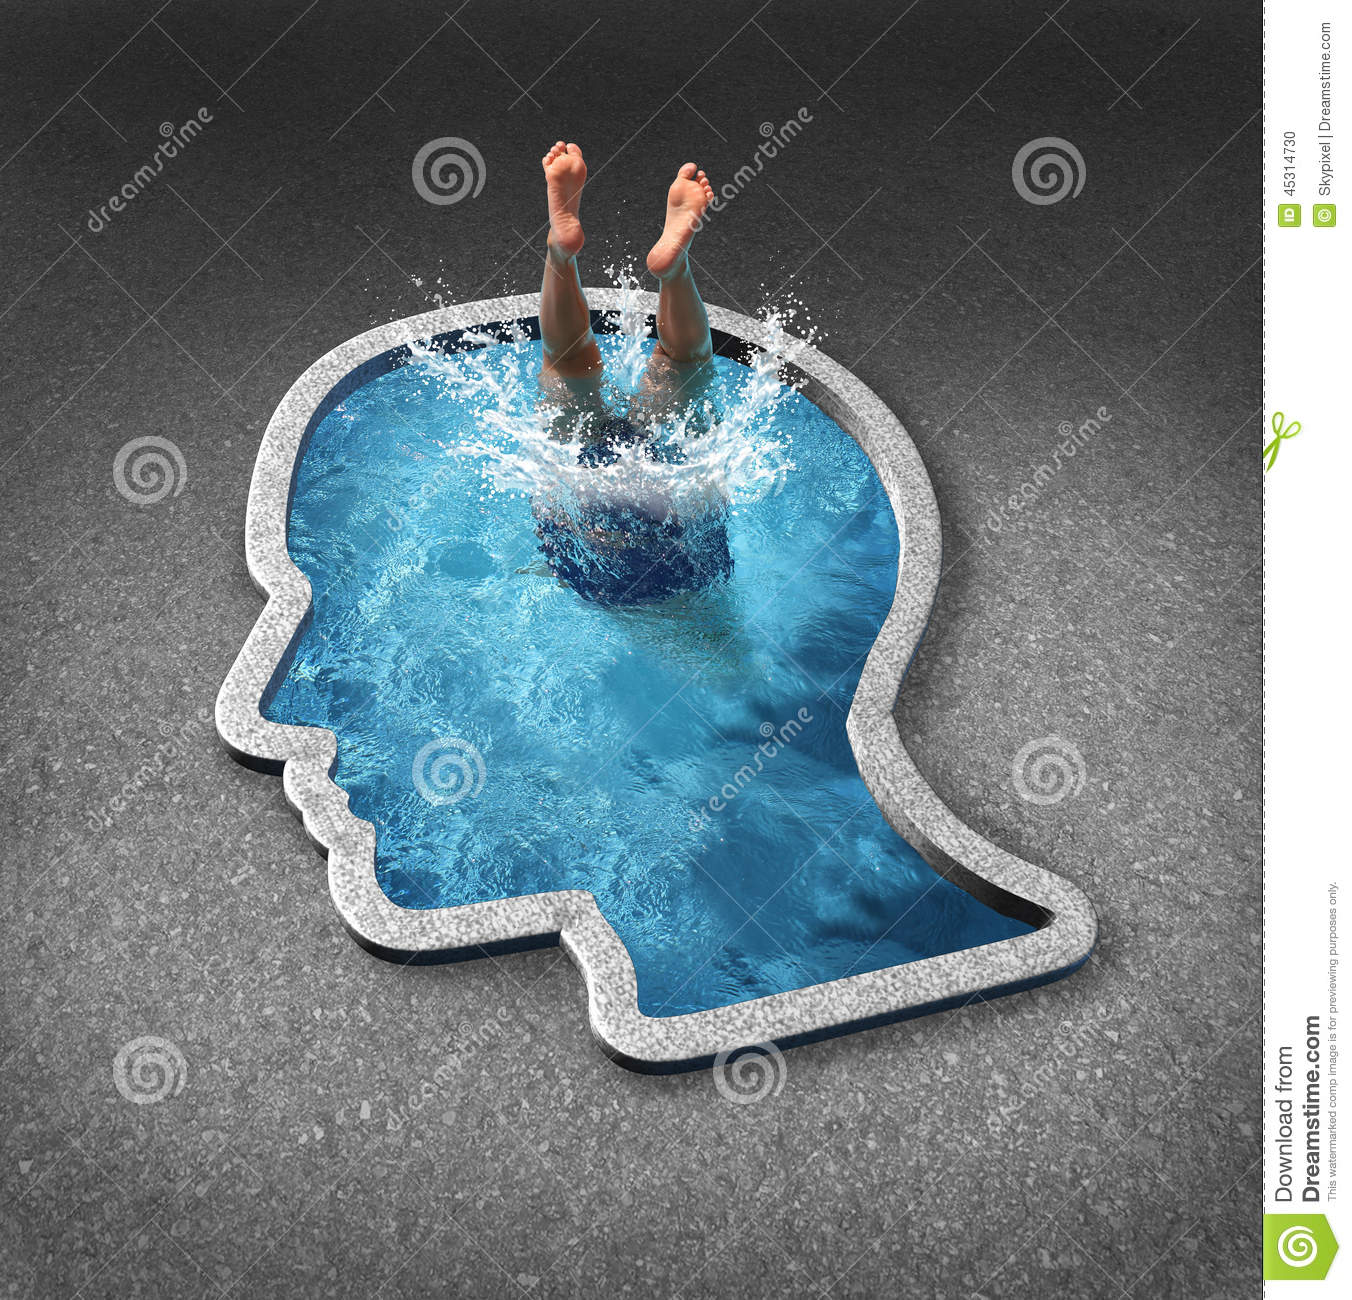 Deep Thinking Stock Illustration Image 45314730